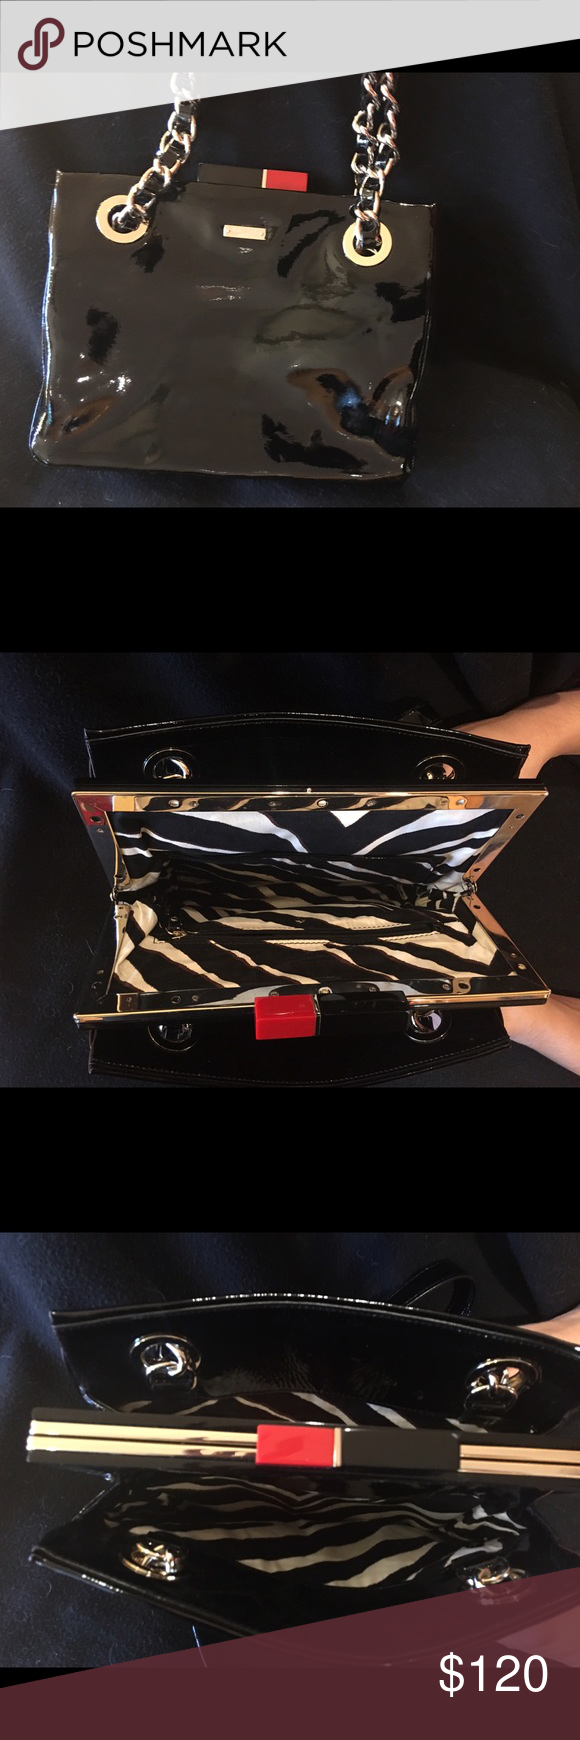 Kate spade Patent leather Kate spade purse excellent condition kate spade Bags Satchels